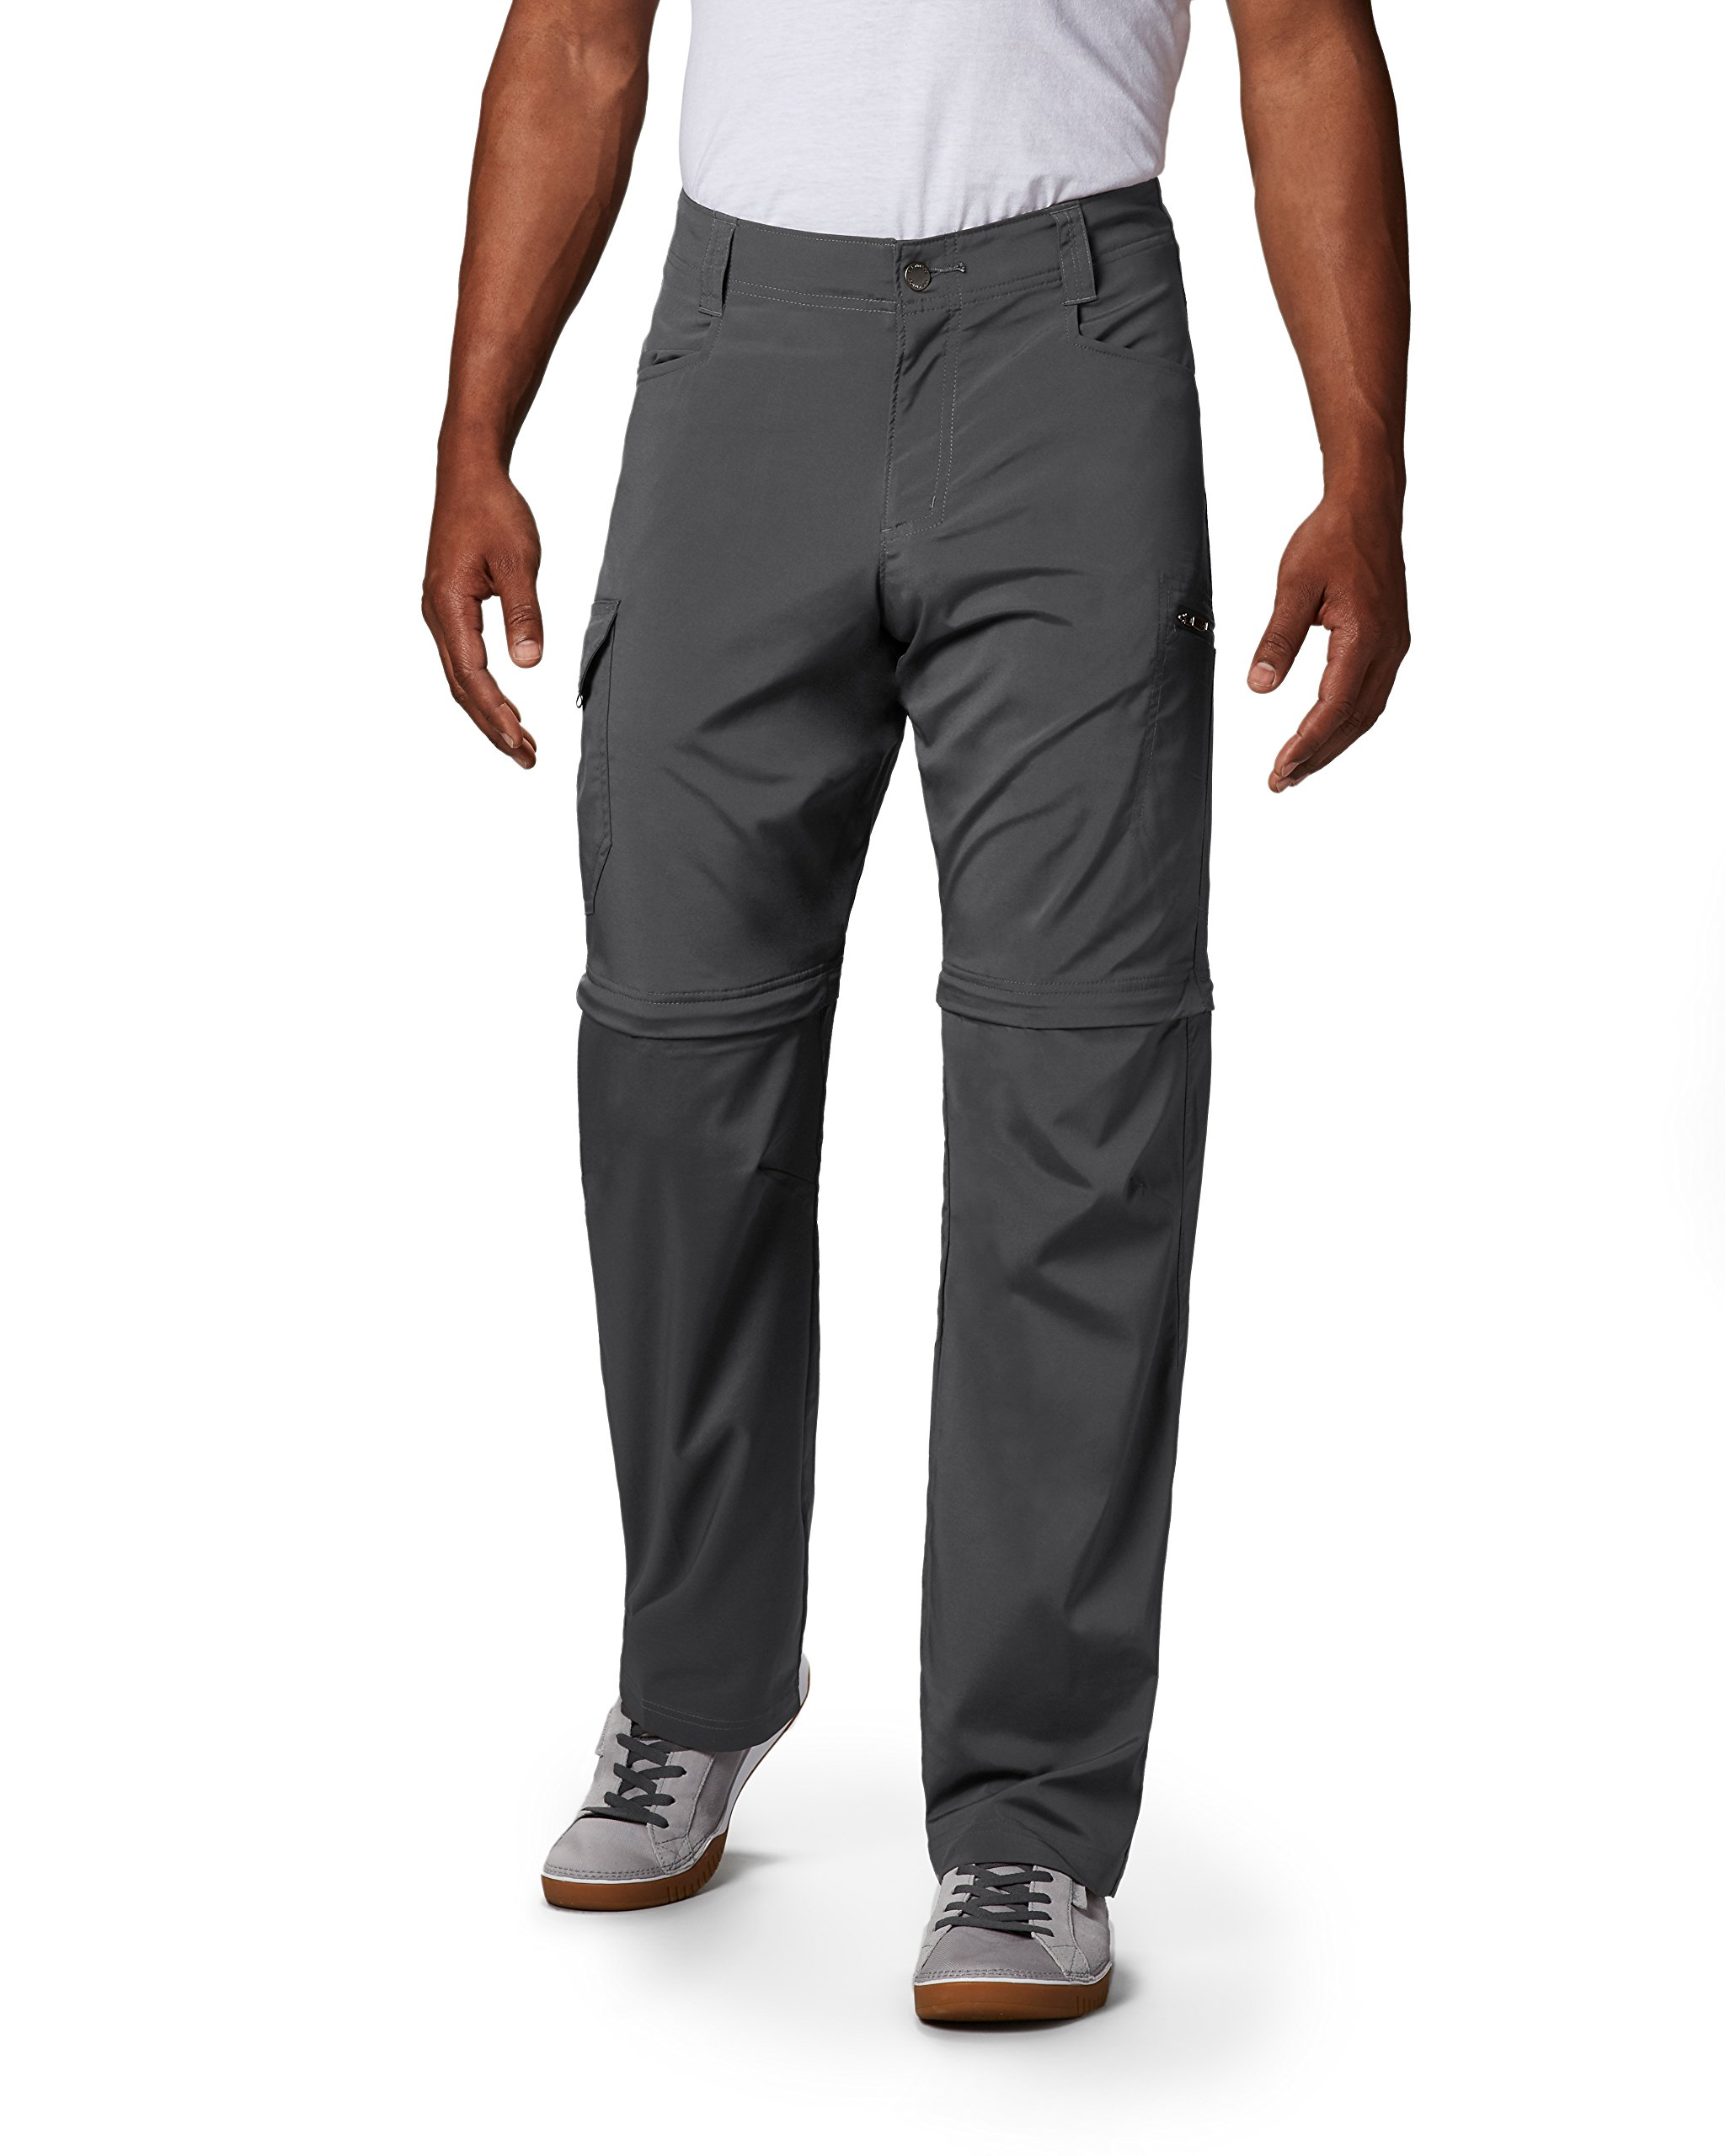 Columbia Men's Silver Ridge Stretch Convertible Pants, Grill, 30 x 32